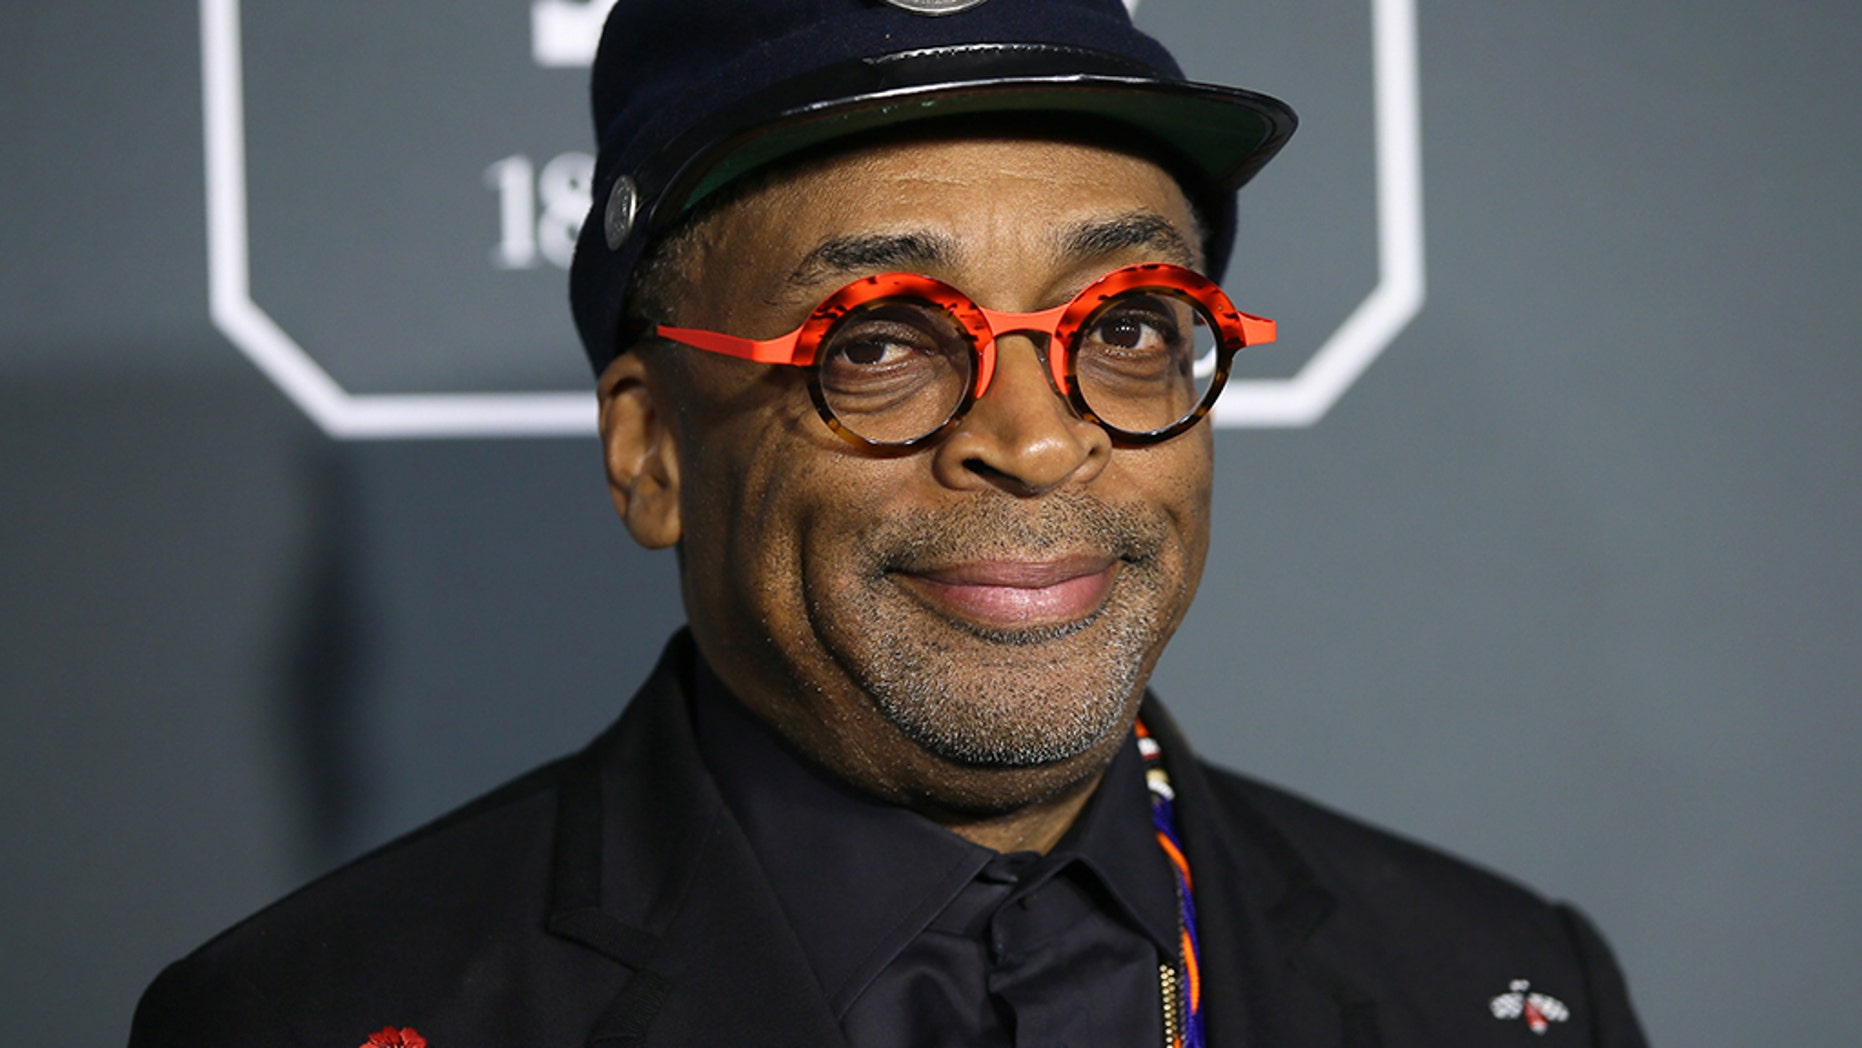 """BlacKkKlansman"" director Spike Lee made reference to explorer Christopher Columbus during an interview Wednesday morning by describing him as a ""terrorist"" and saying that he thinks the United States needs to be truthful about the country's past."